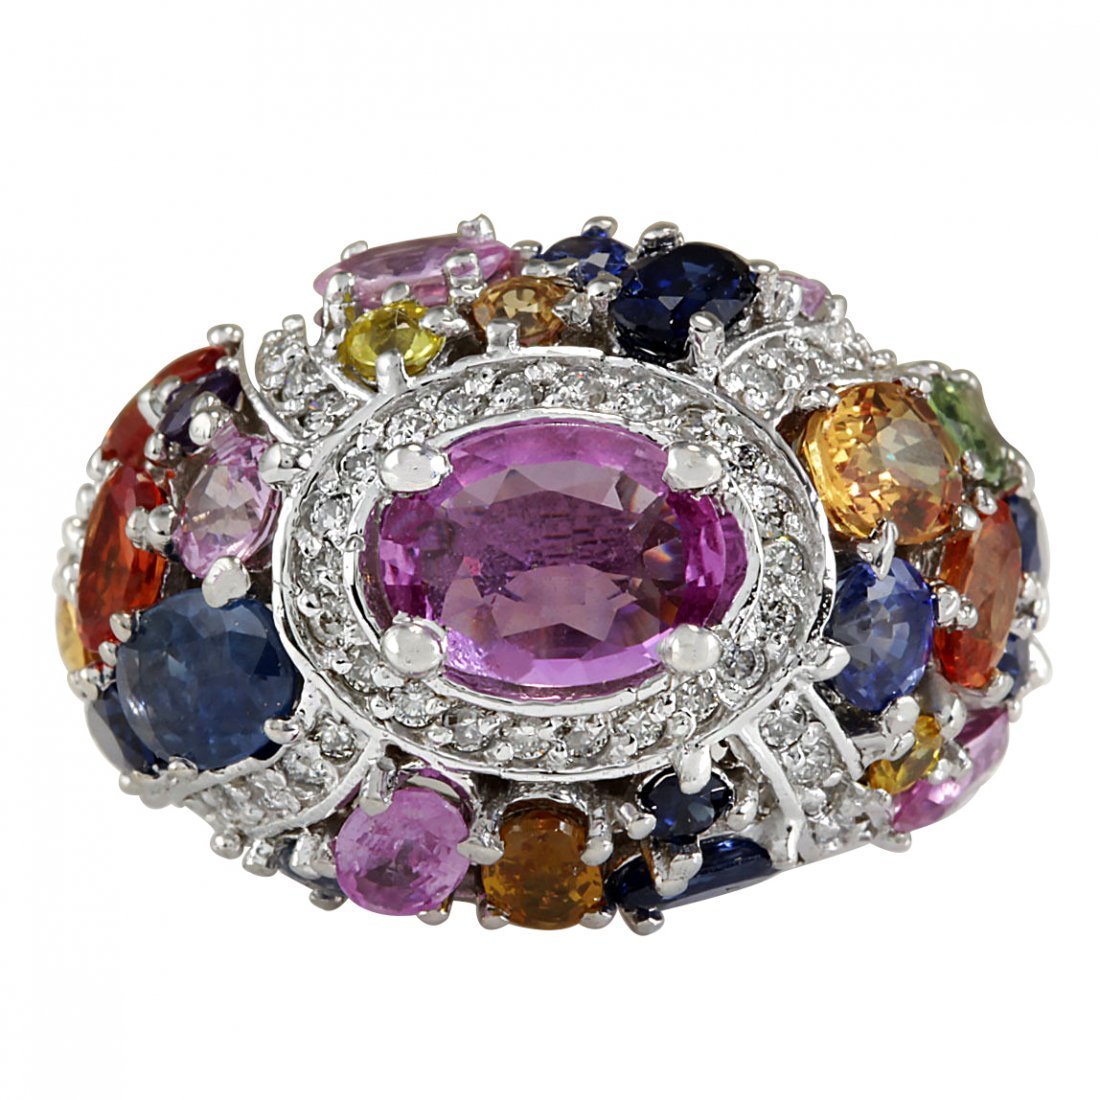 6.83CTW Natural Sapphire And Diamond Ring In 14K White